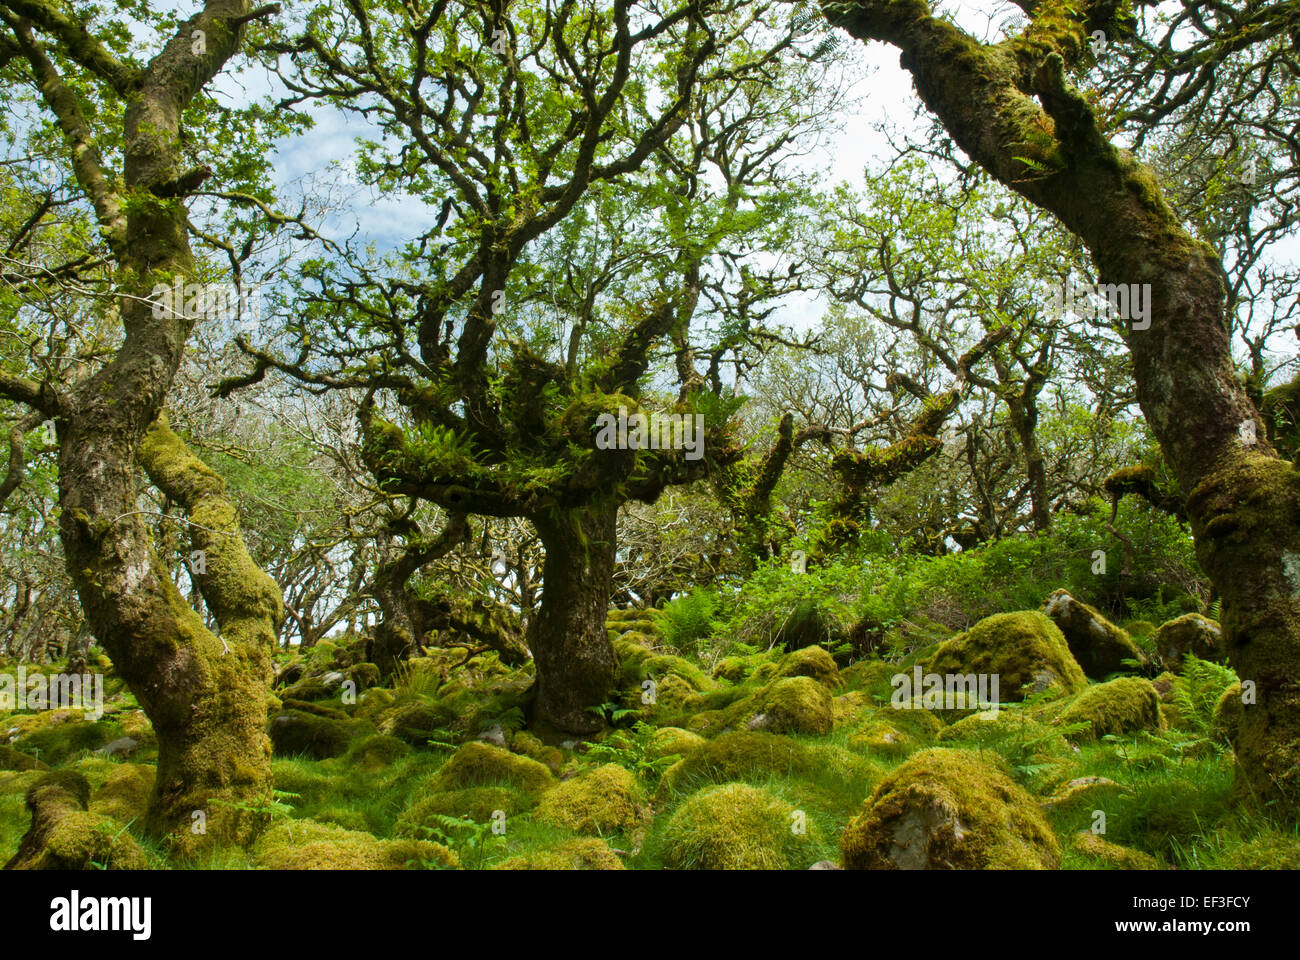 Wistman's Wood, Dartmoor, Devon UK. Gnarled ancient dwarf oaks and granite boulders covered in verdant moss - Stock Image